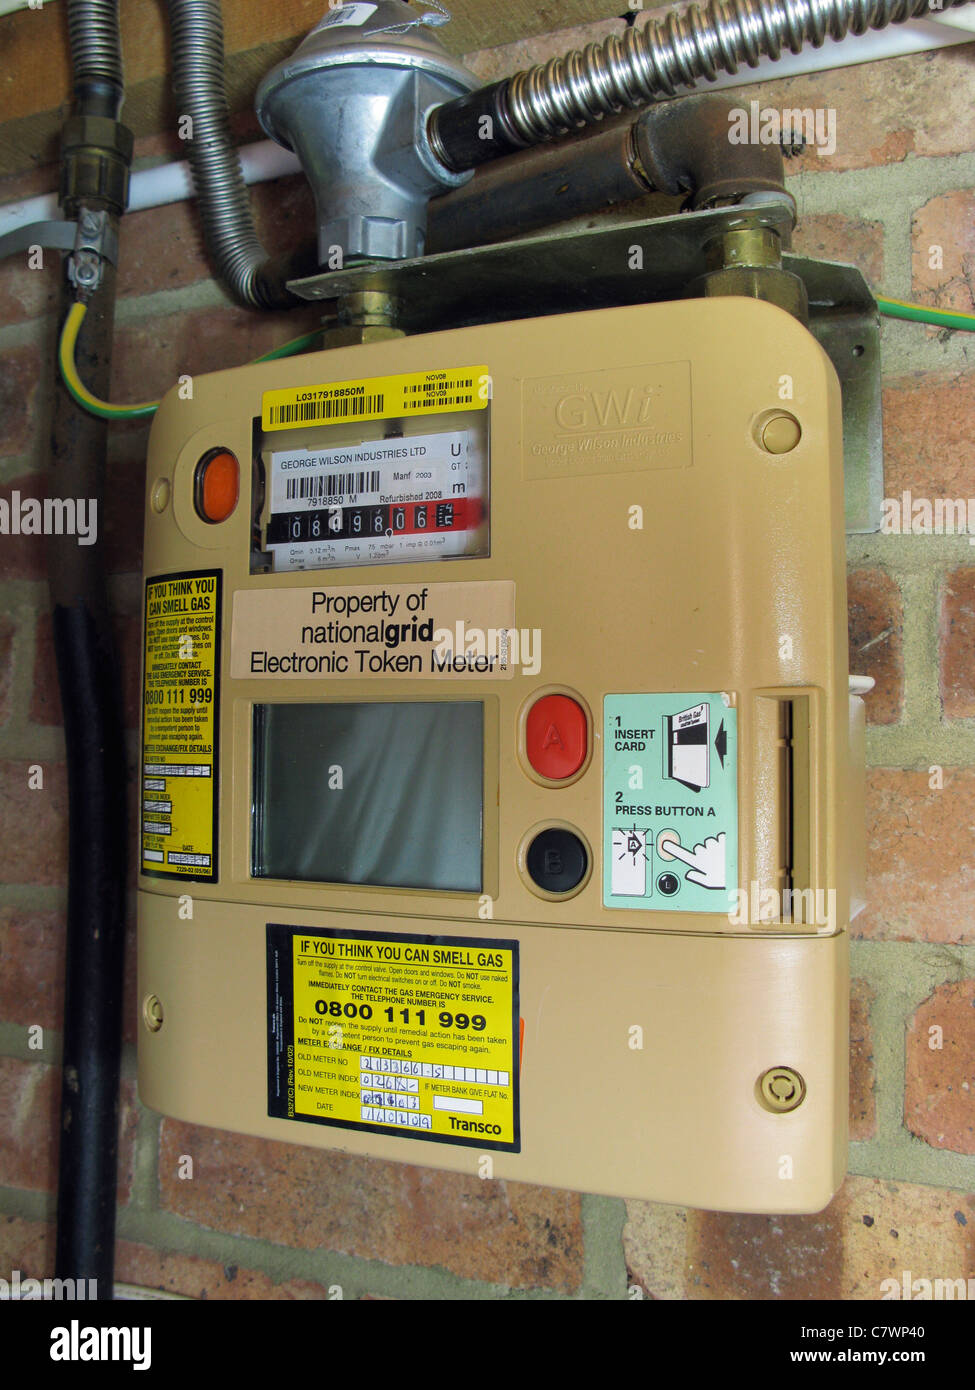 quantum key prepayment gas meter, paying for gas as you use it - Stock Image